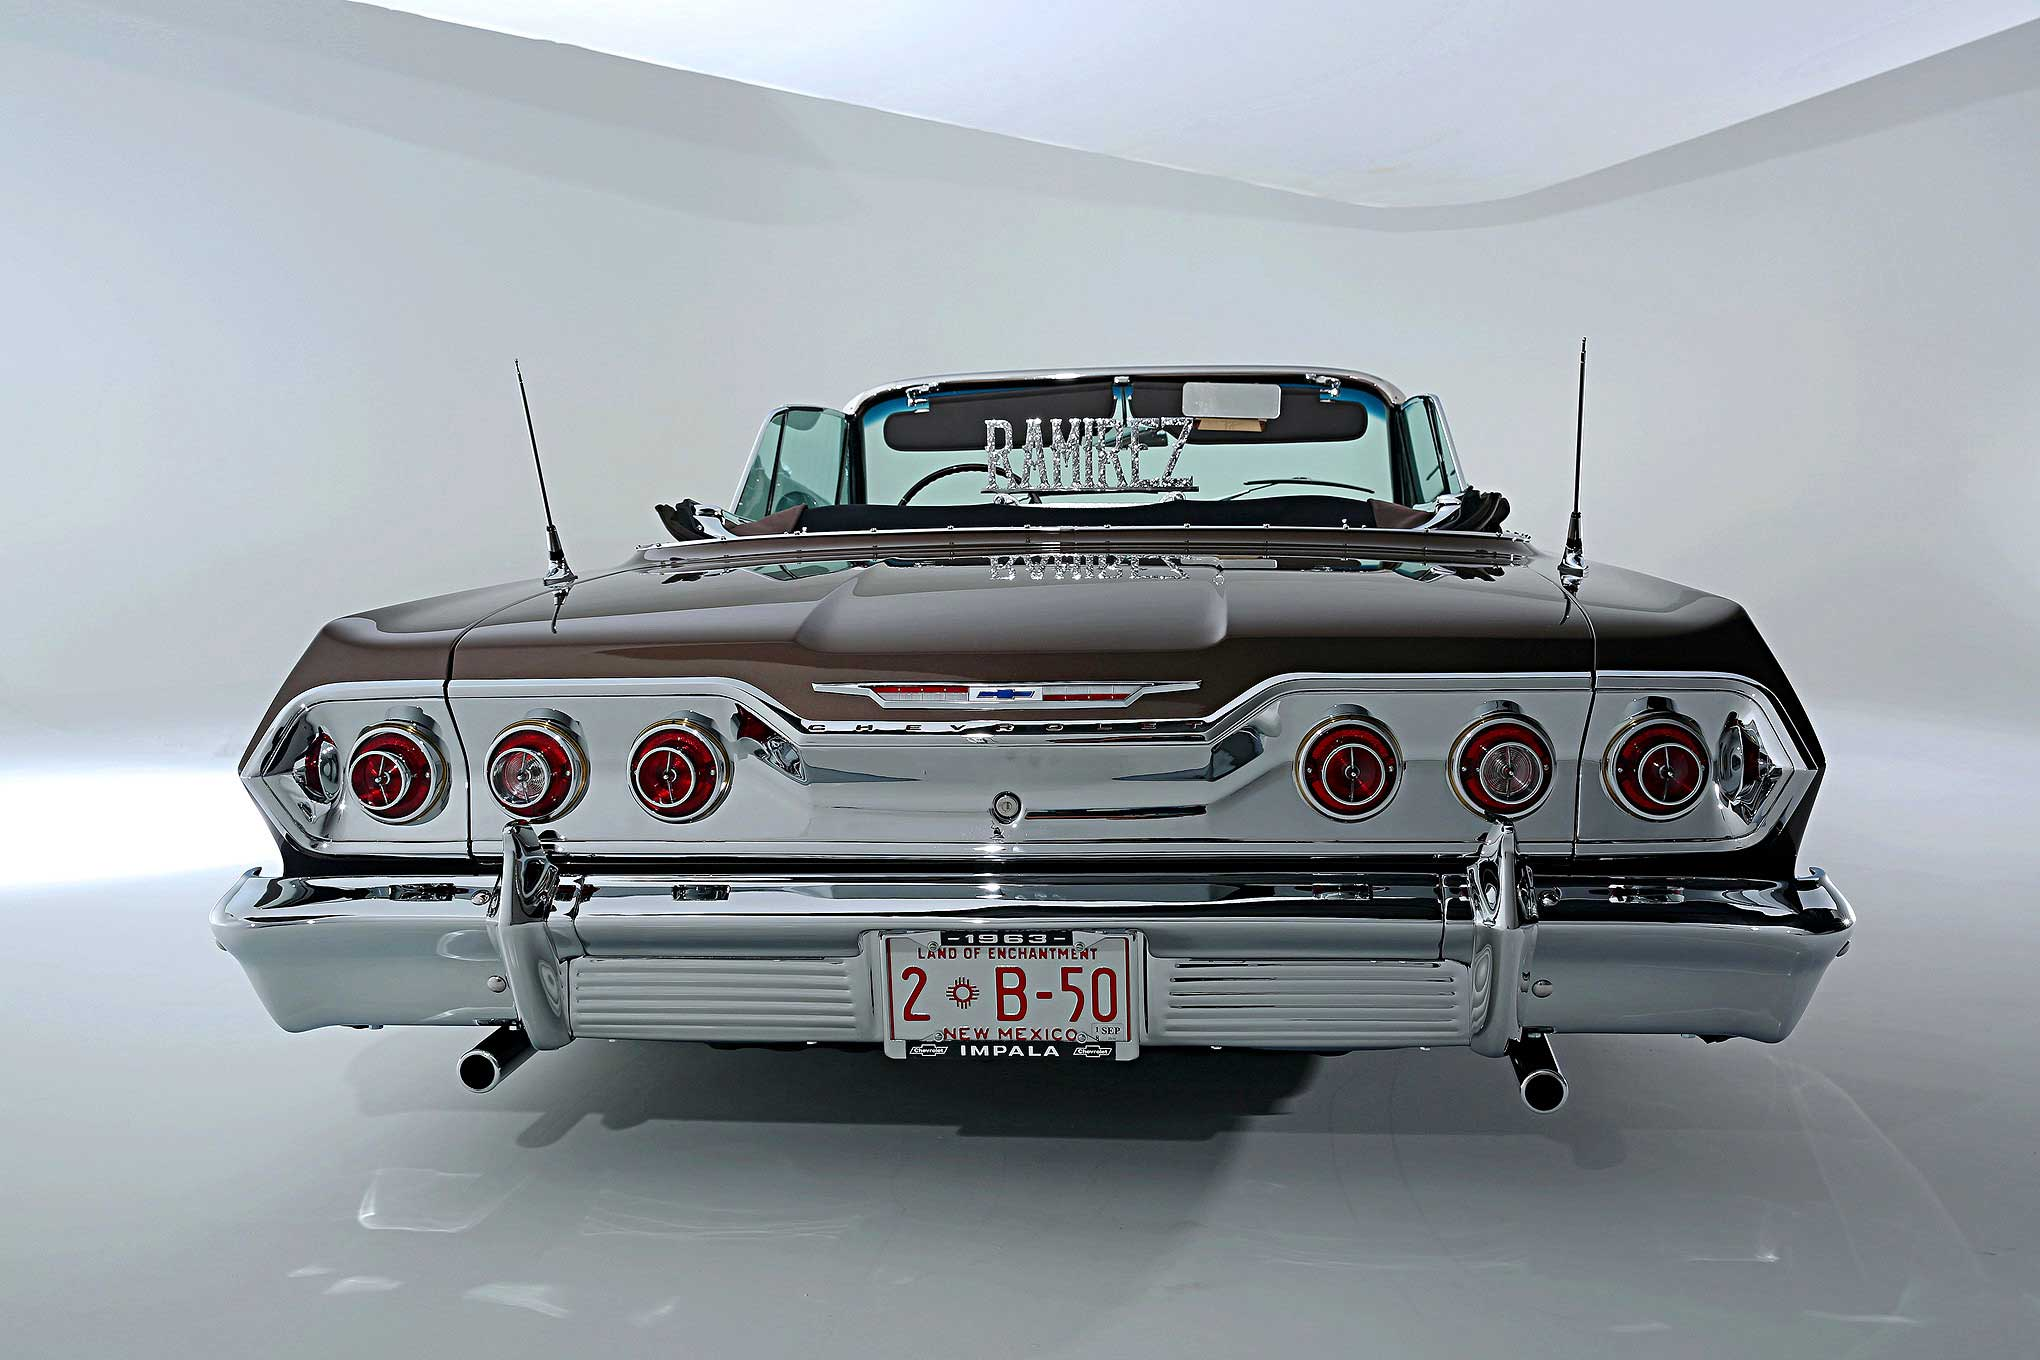 1963 chevrolet impala convertible taking flight. Black Bedroom Furniture Sets. Home Design Ideas